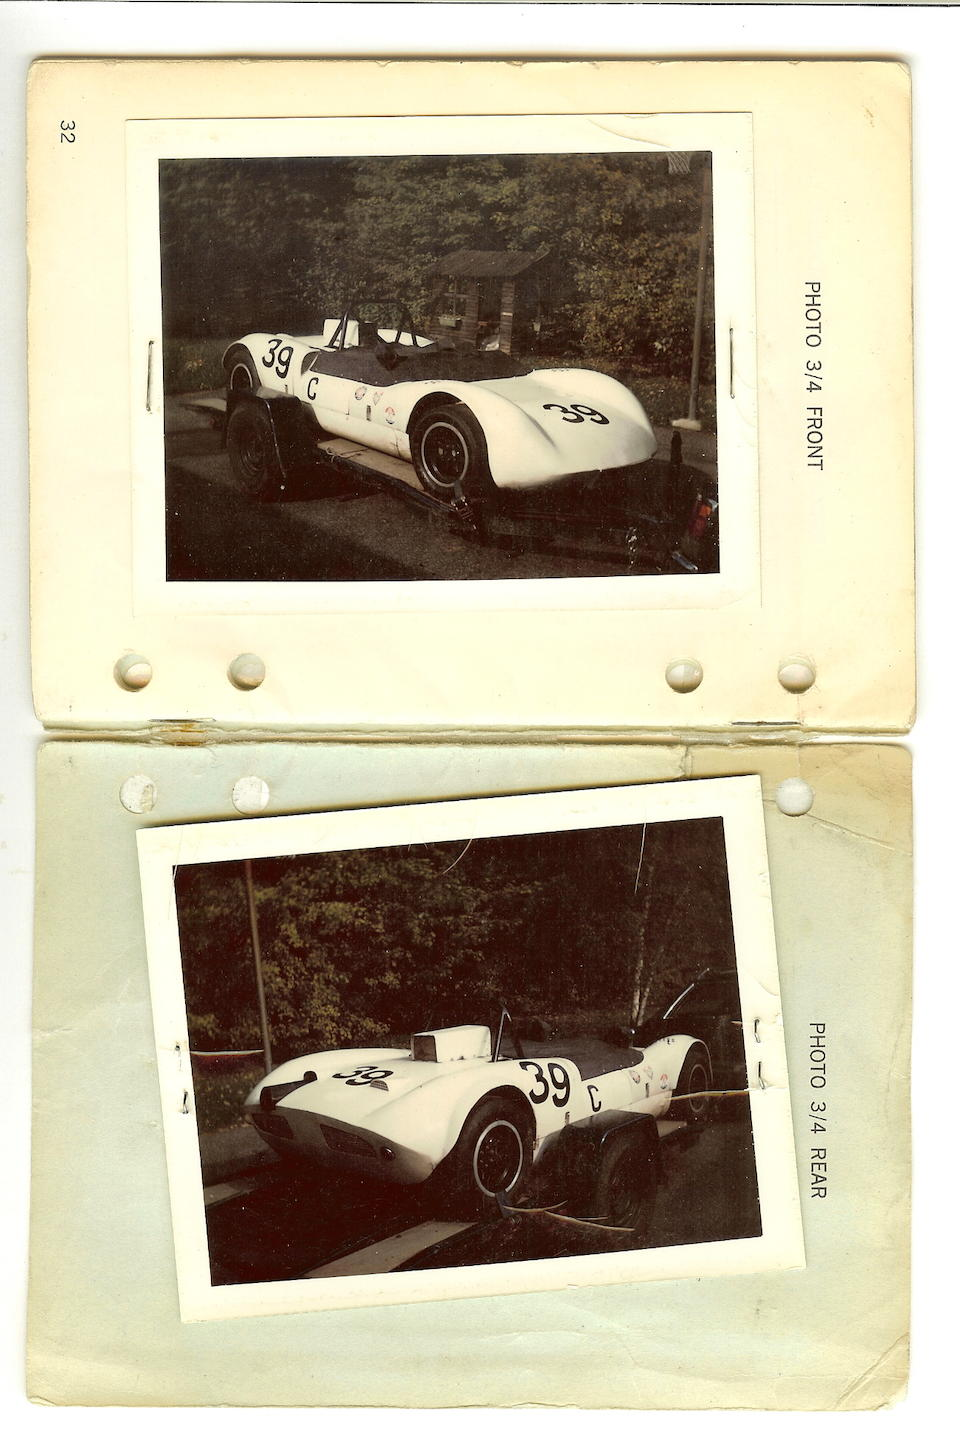 1963 Elva Mk7-Ford Sports-Racer  Chassis no. 70-003